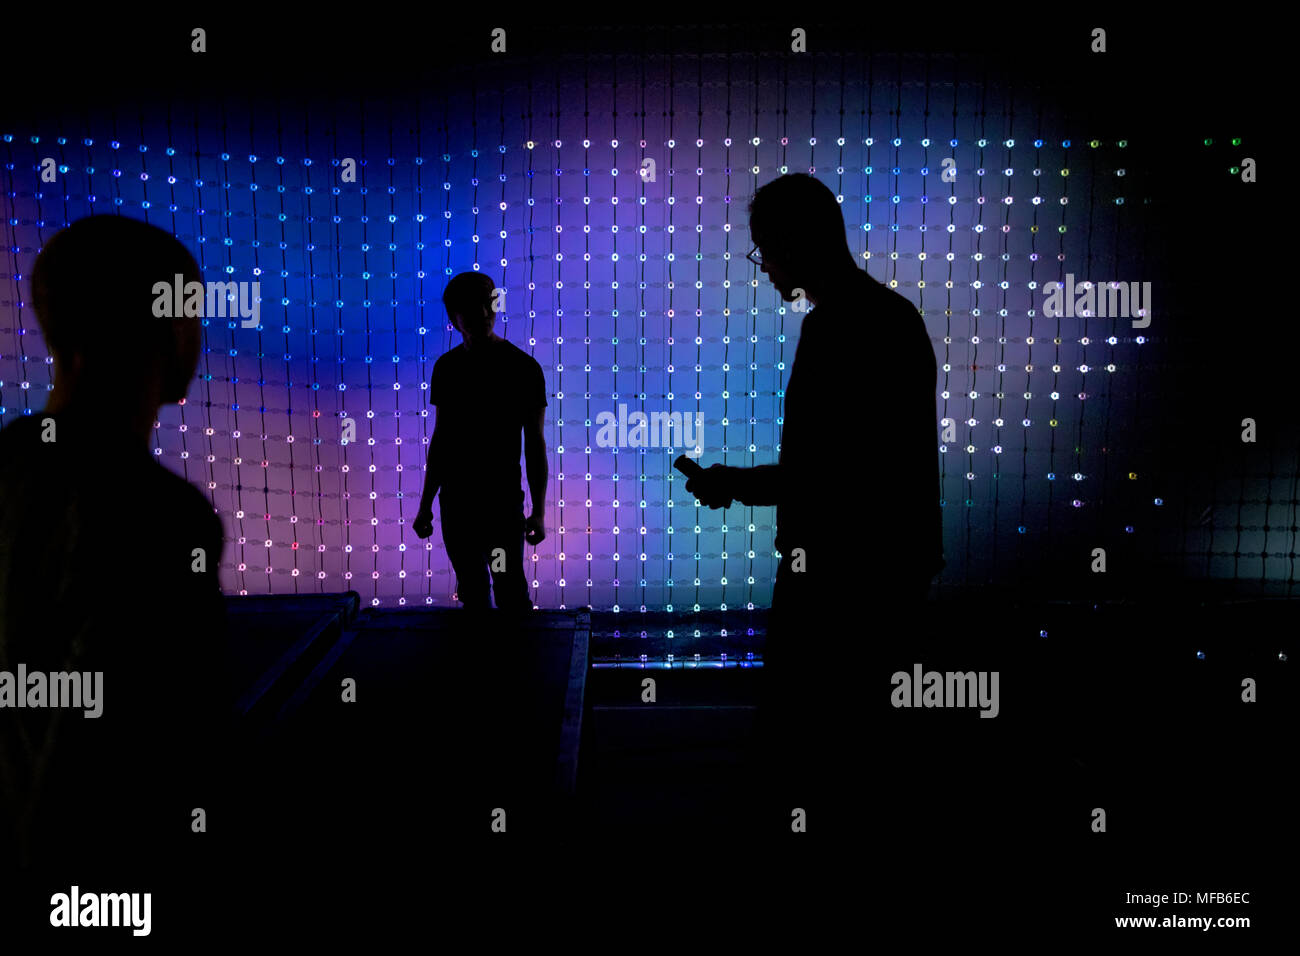 People in the background of the LED panel - Stock Image